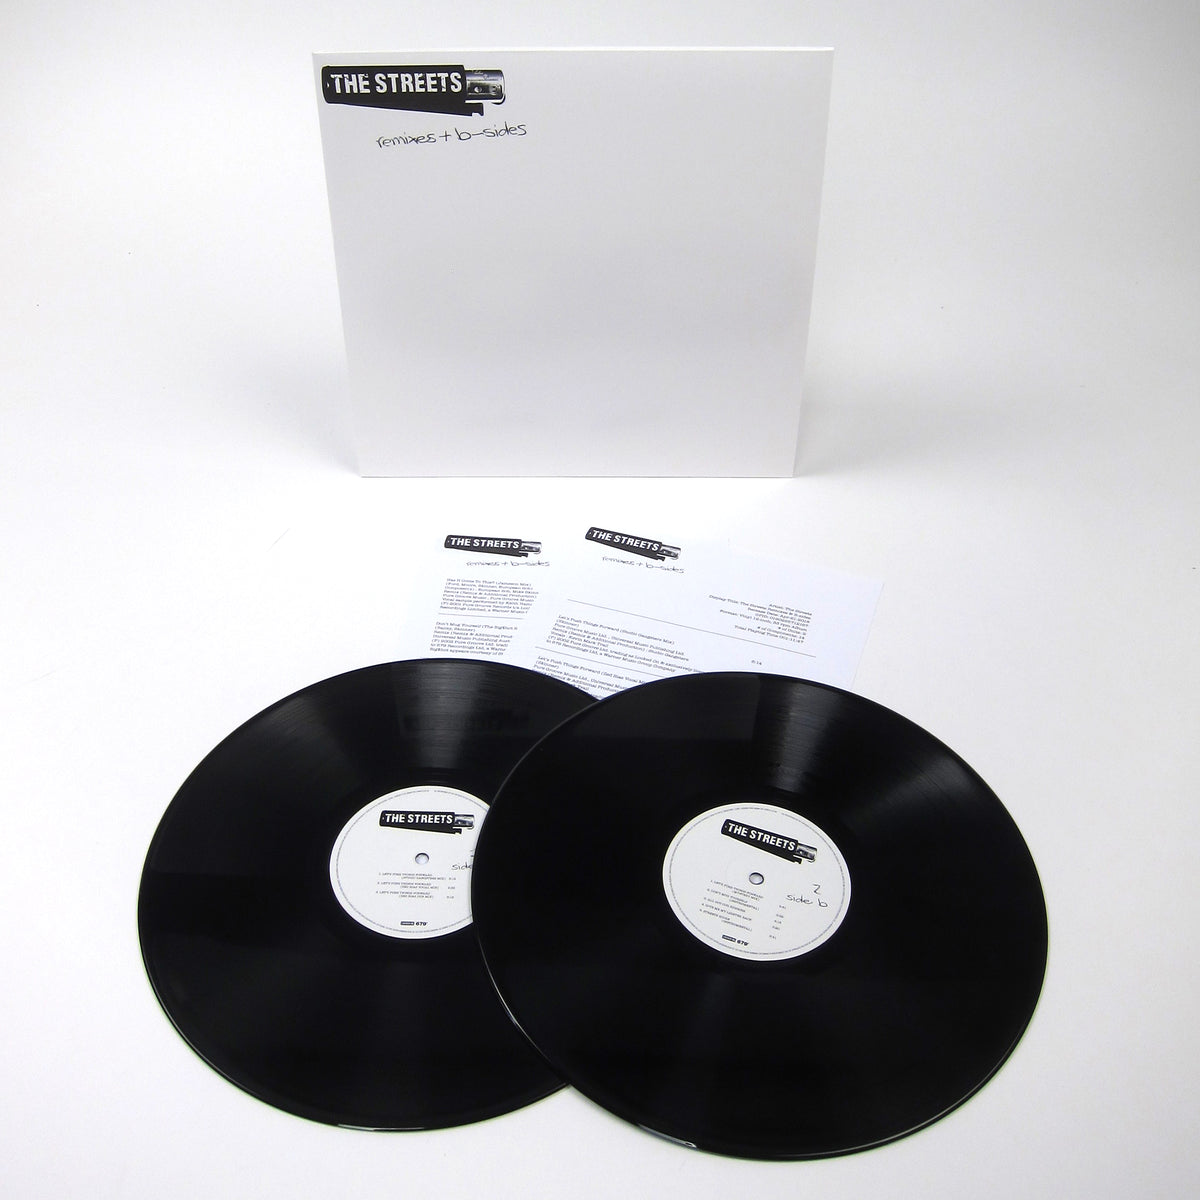 The Streets: Remixes & B-Sides Vinyl 2LP (Record Store Day)